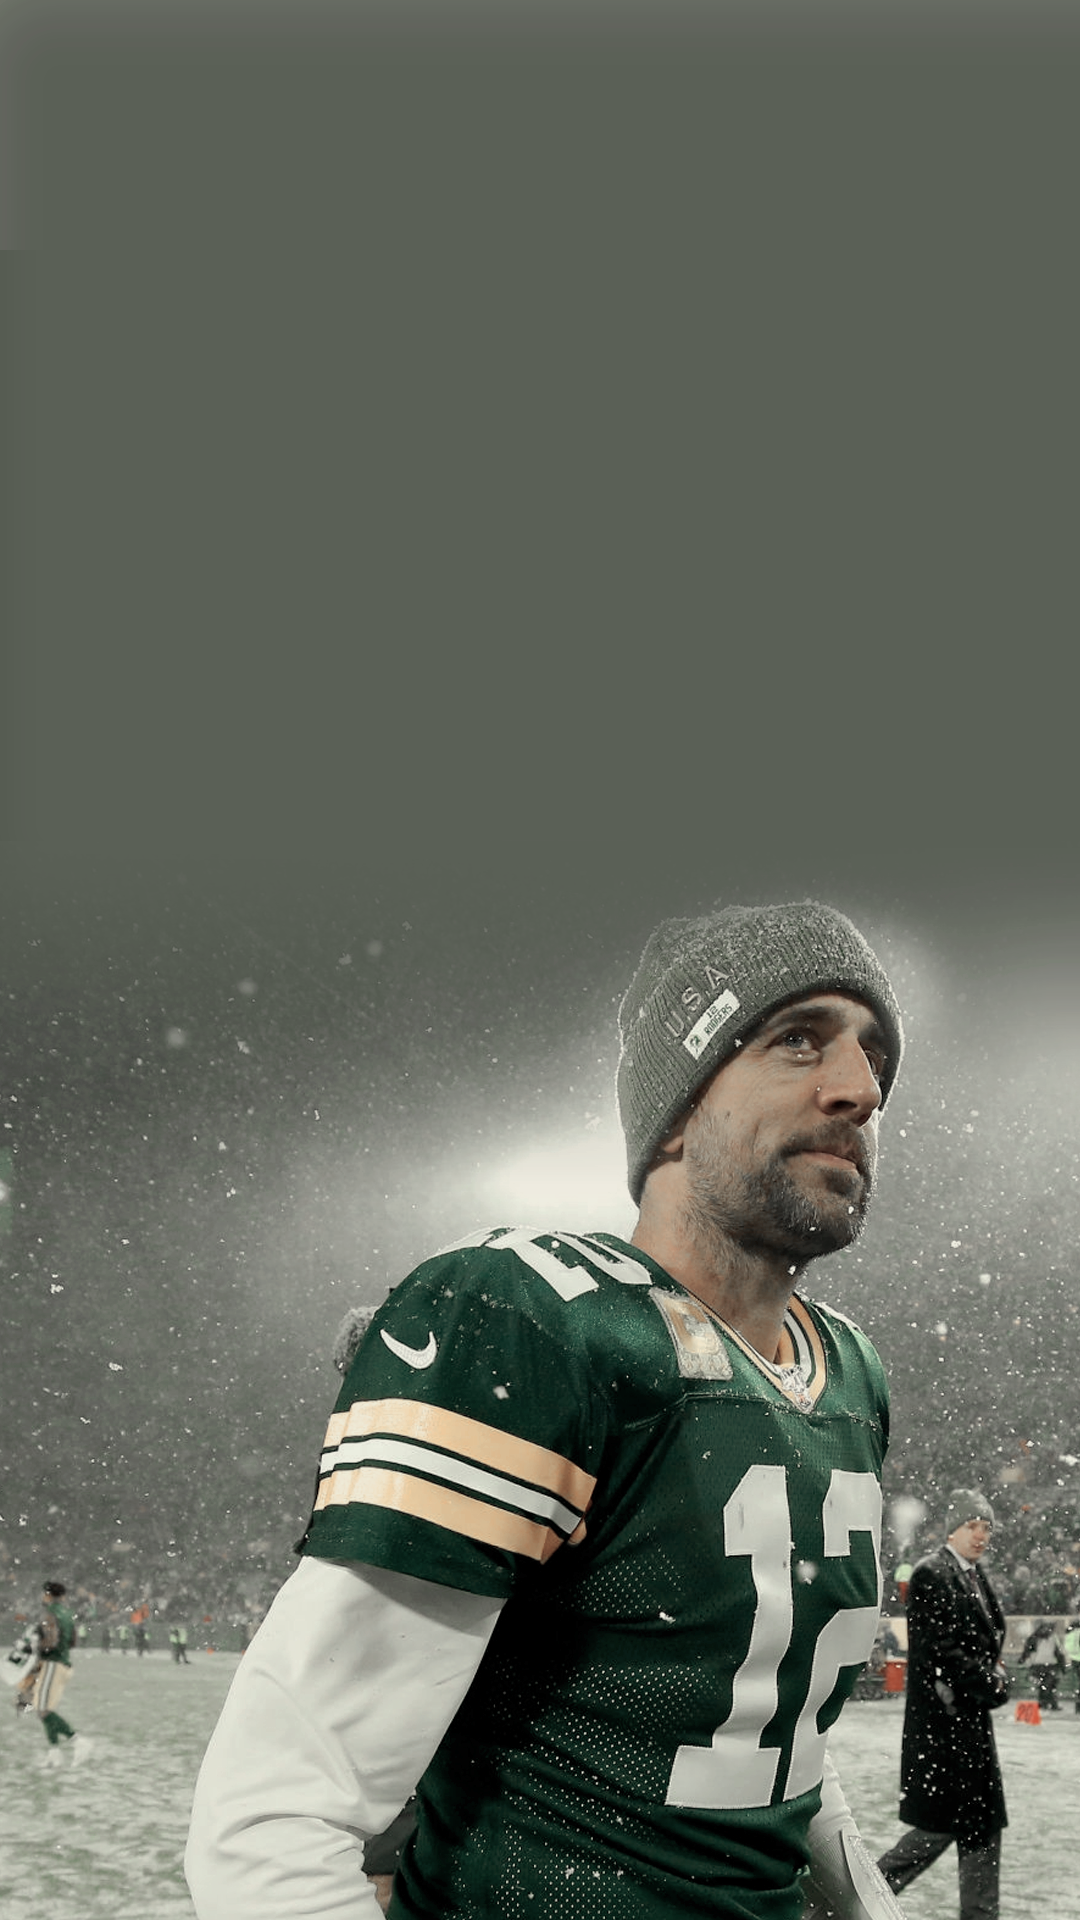 𝒂𝒂𝒓𝒐𝒏 𝒓𝒐𝒅𝒈𝒆𝒓𝒔 In 2020 Aaron Rodgers Fashion Athlete